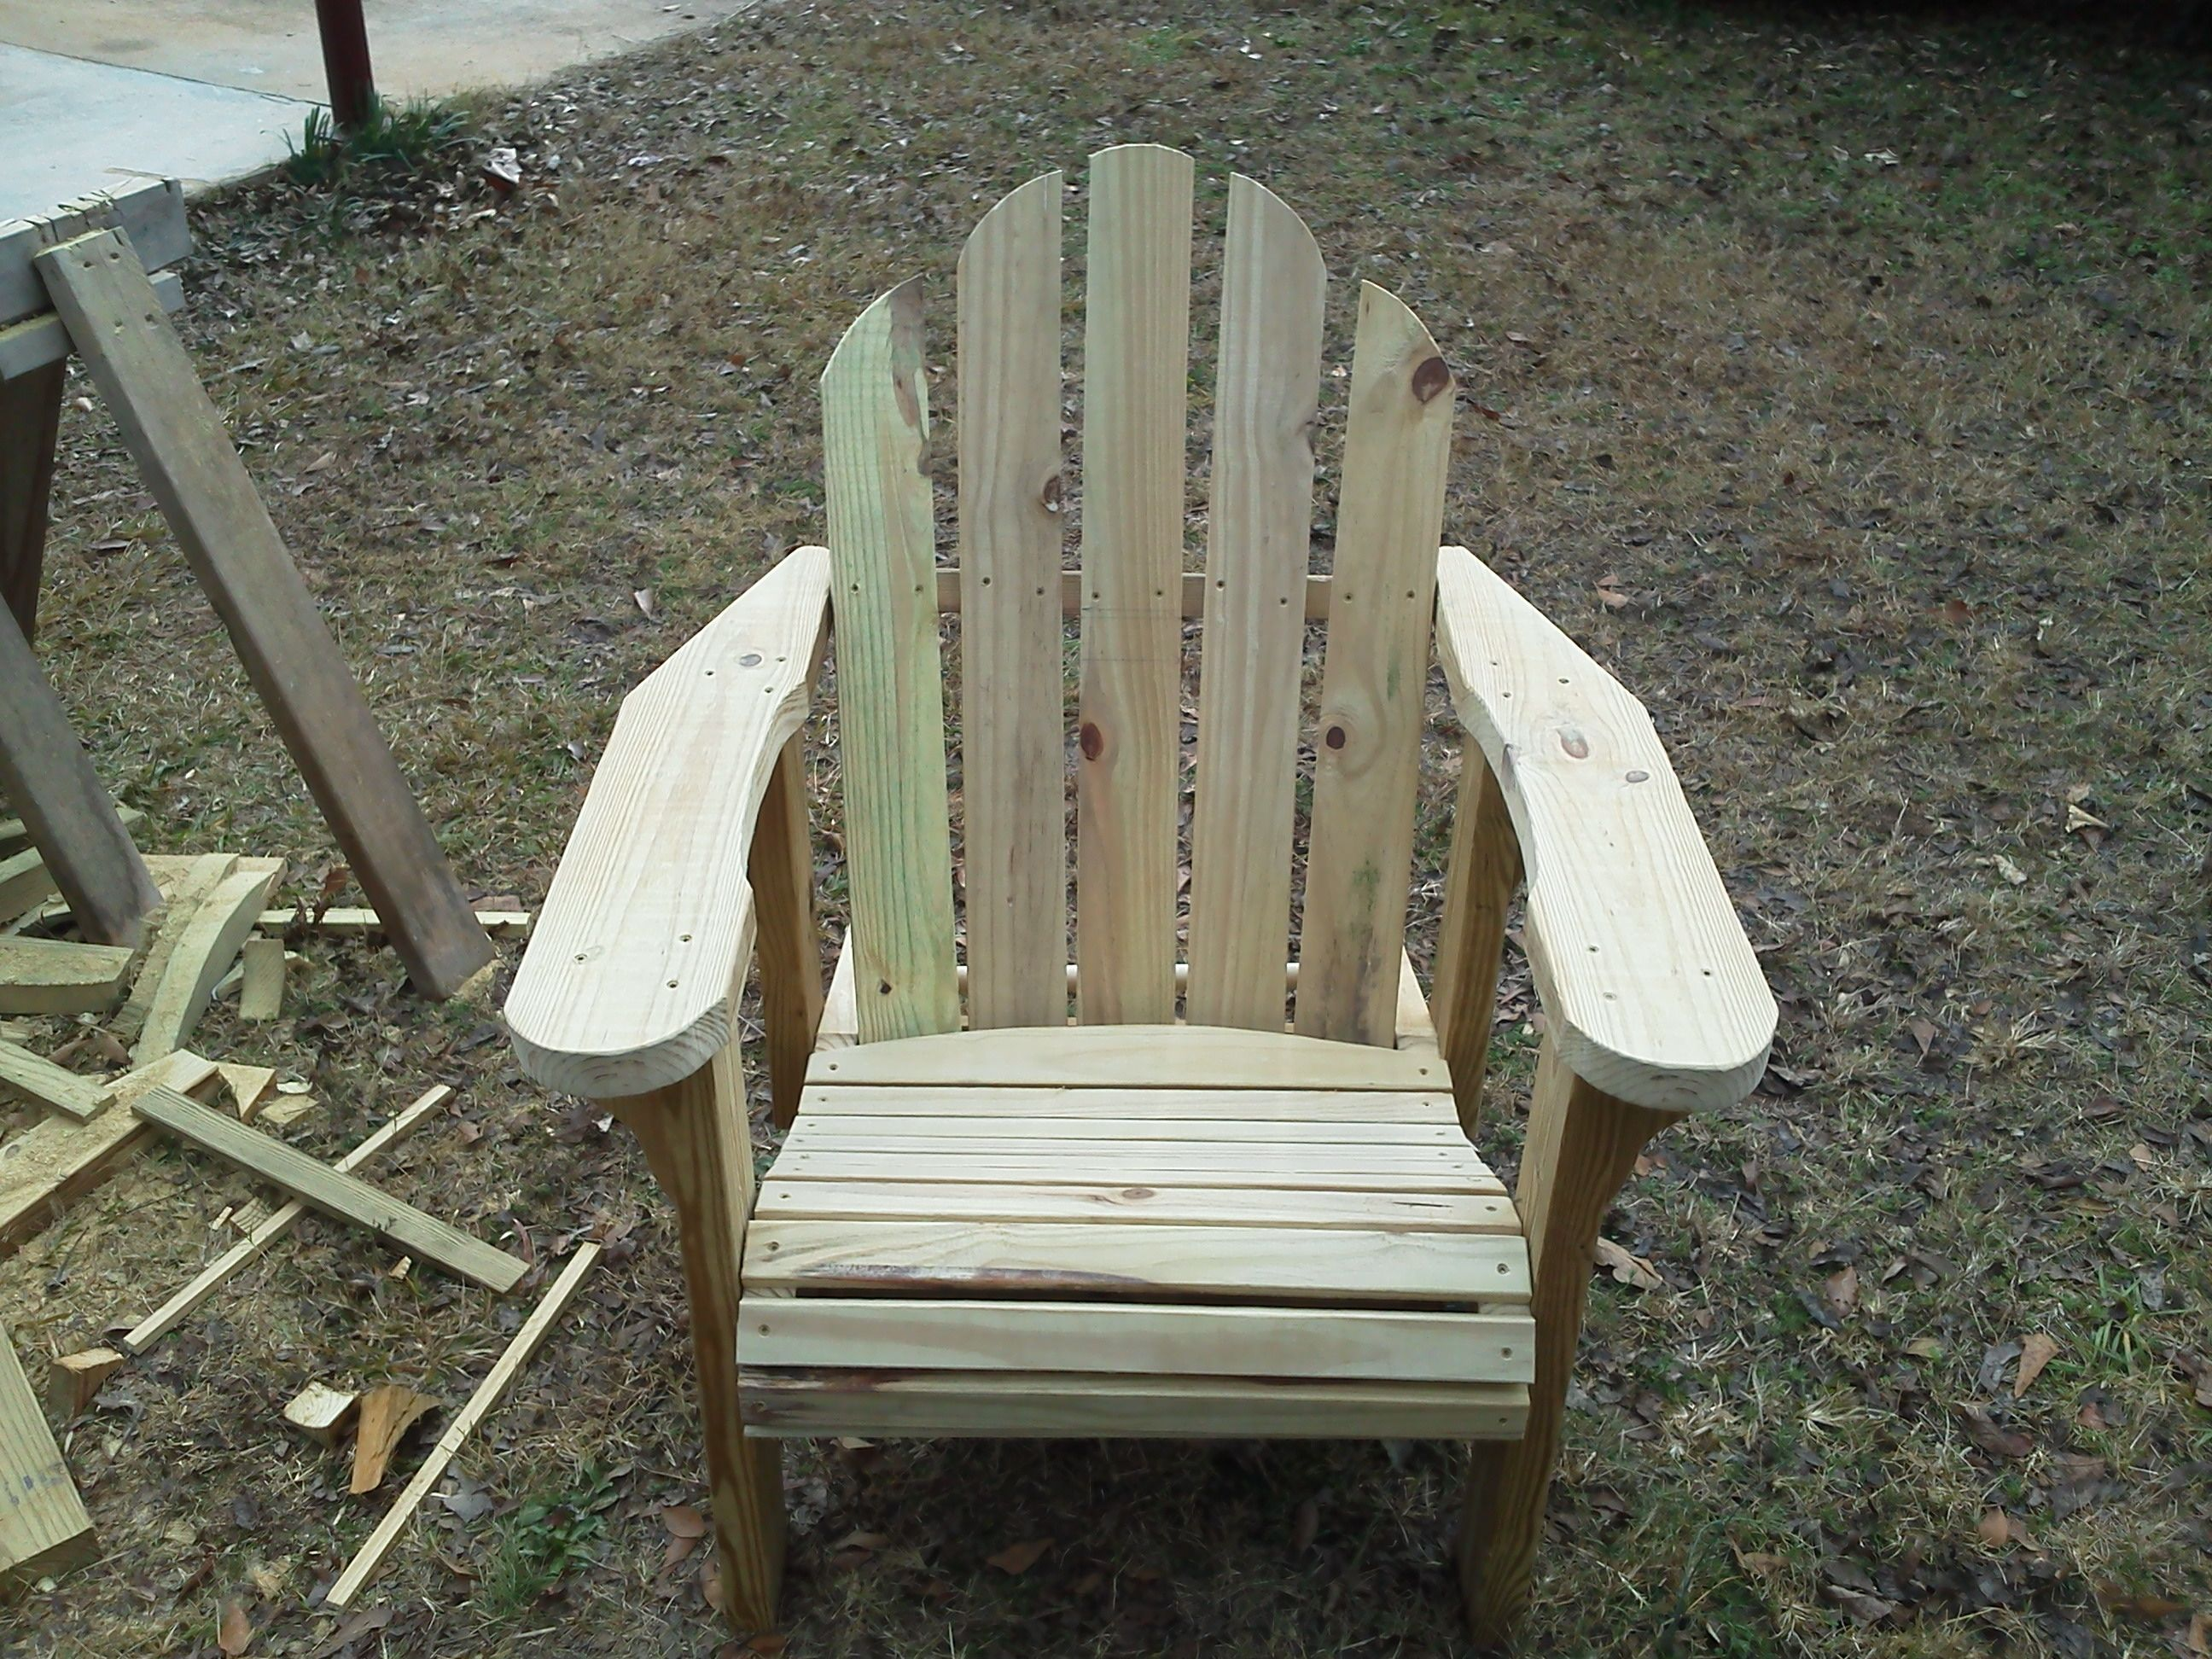 Adirondack Chair made from pressure treated lumber